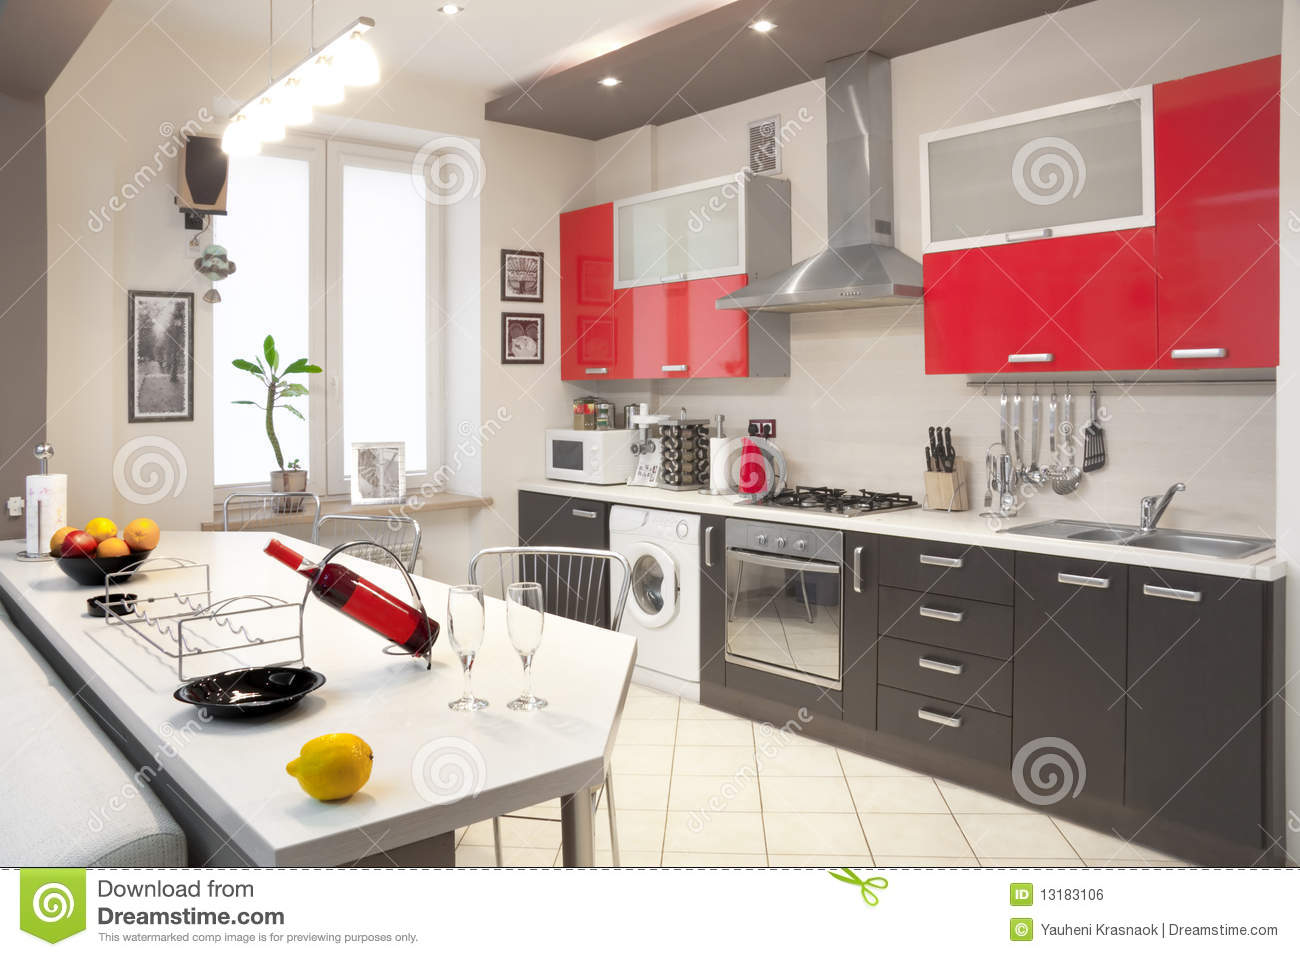 Modern kitchen interior royalty free stock image image for Kitchen interior design images